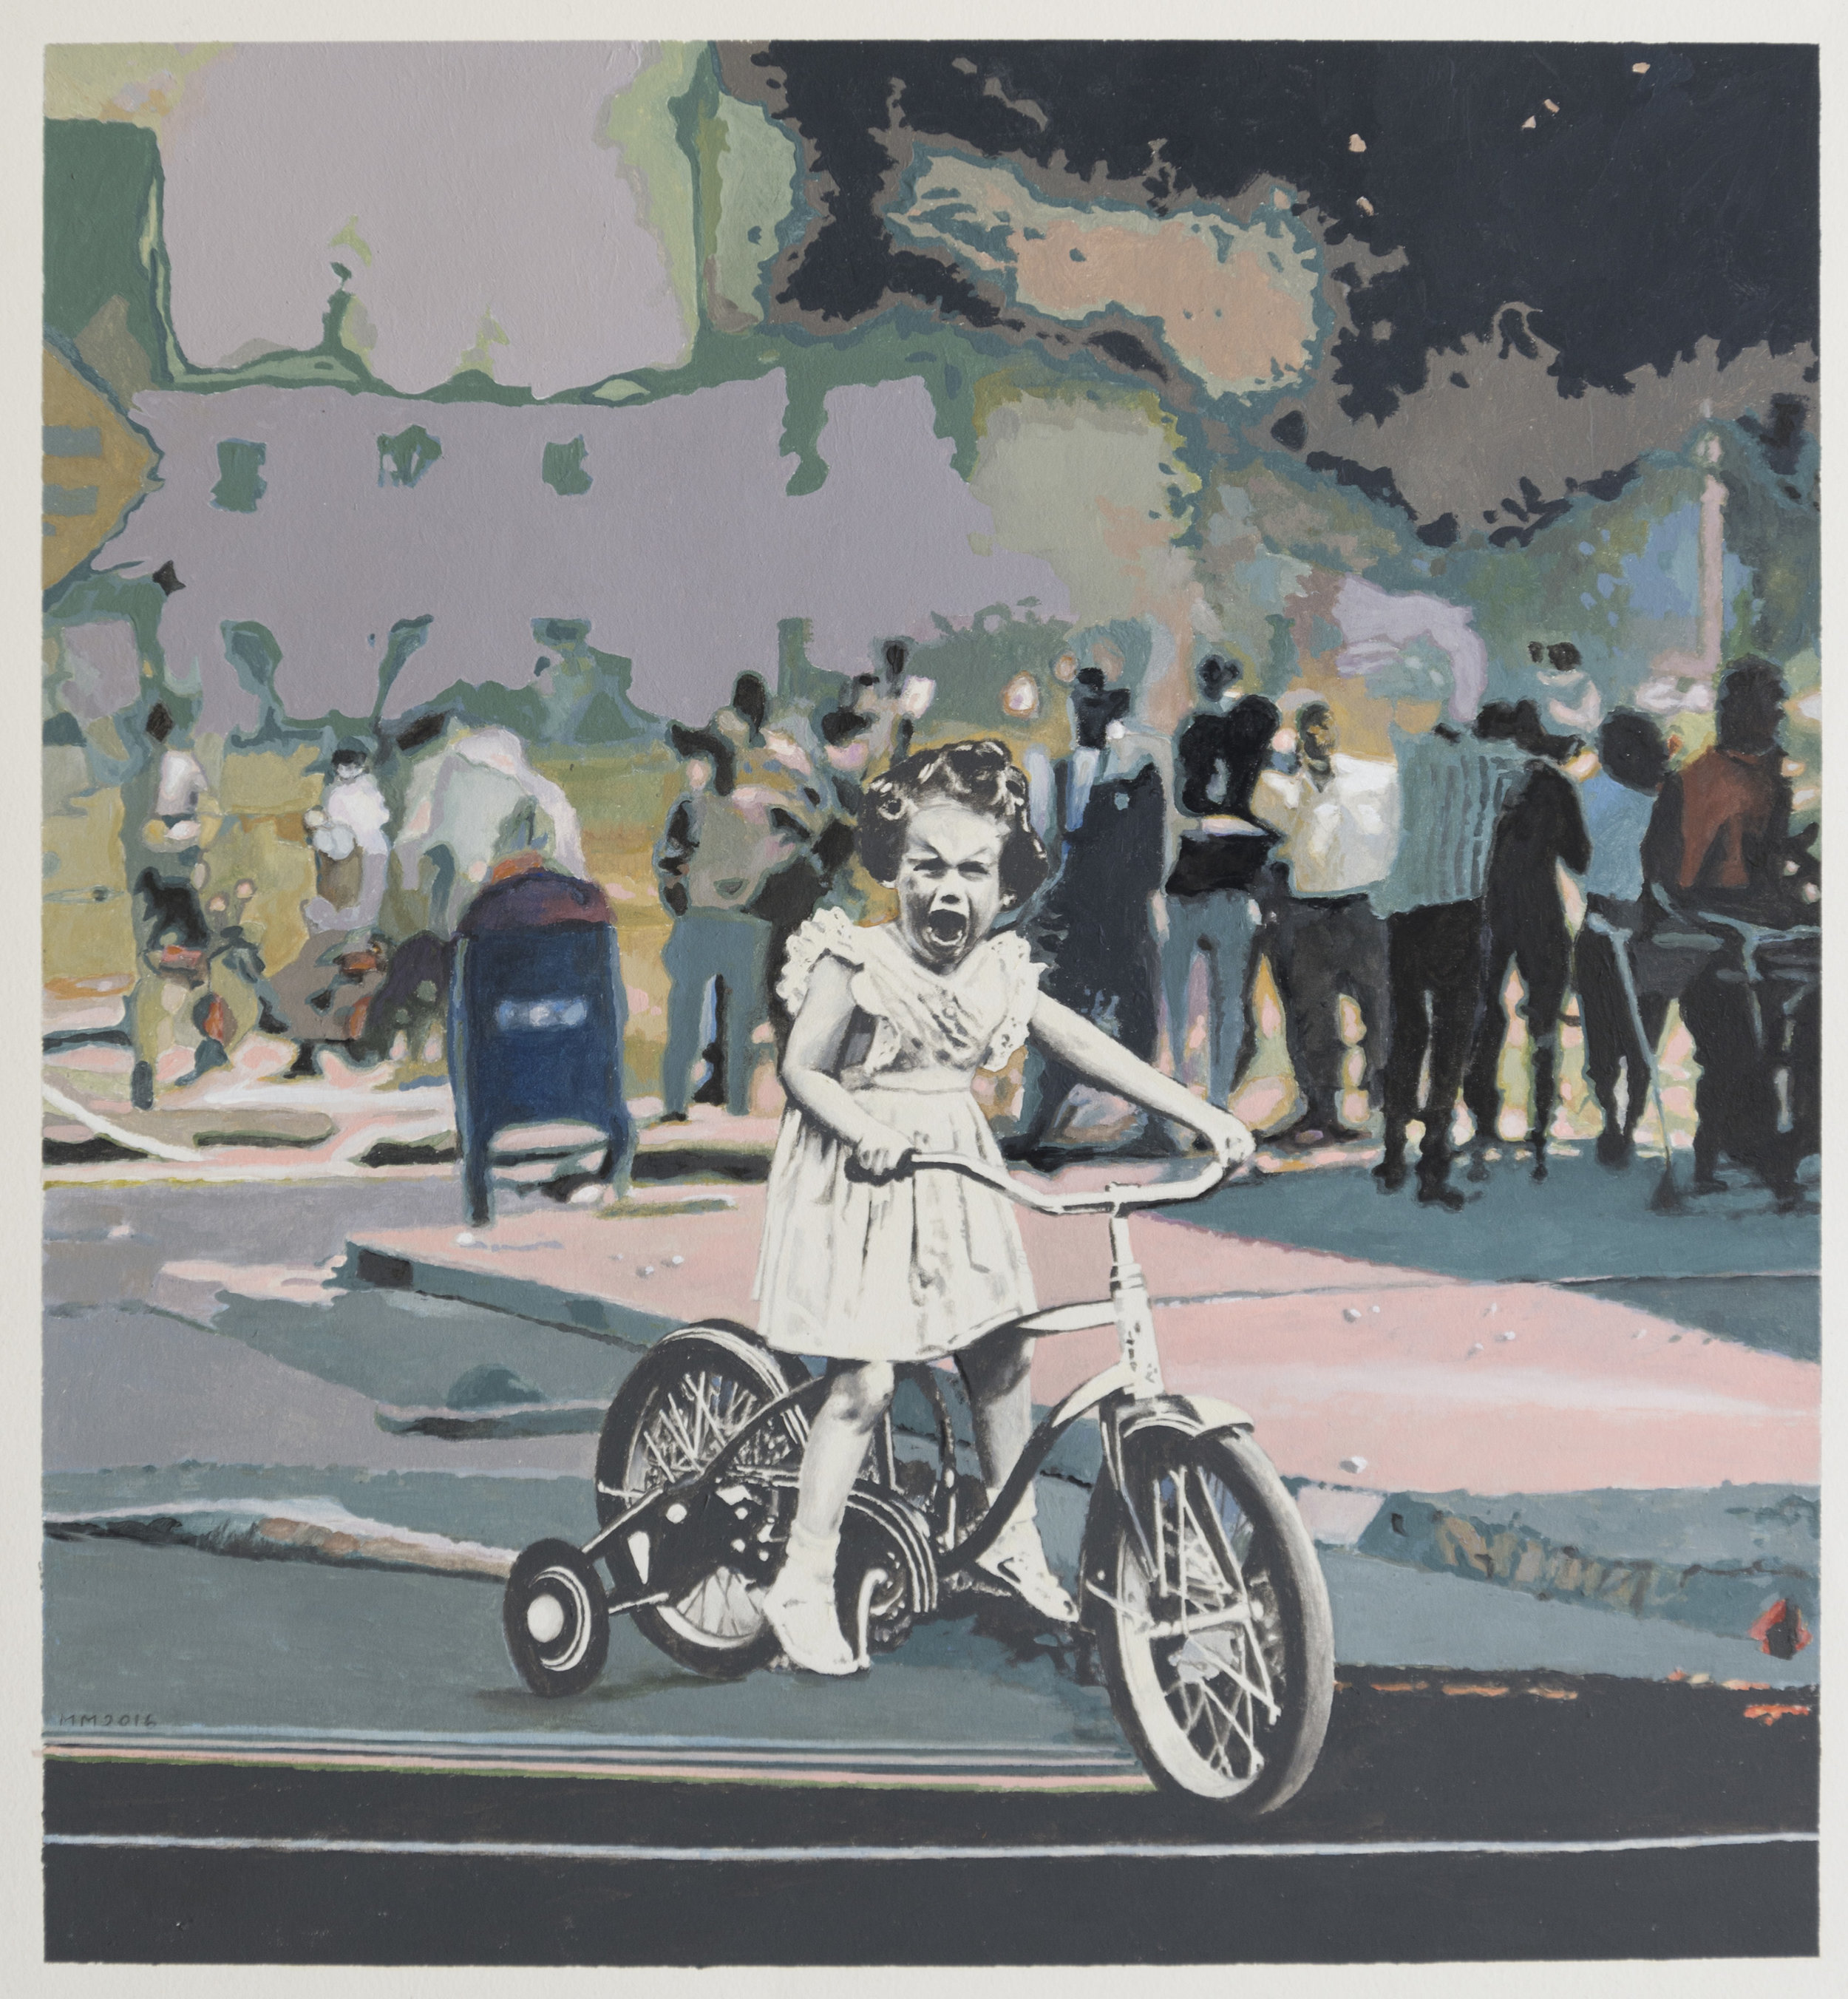 """Martin Mull  Trike, 2016 Oil and Acrylic on Paper, 15.5"""" x 16.75"""""""